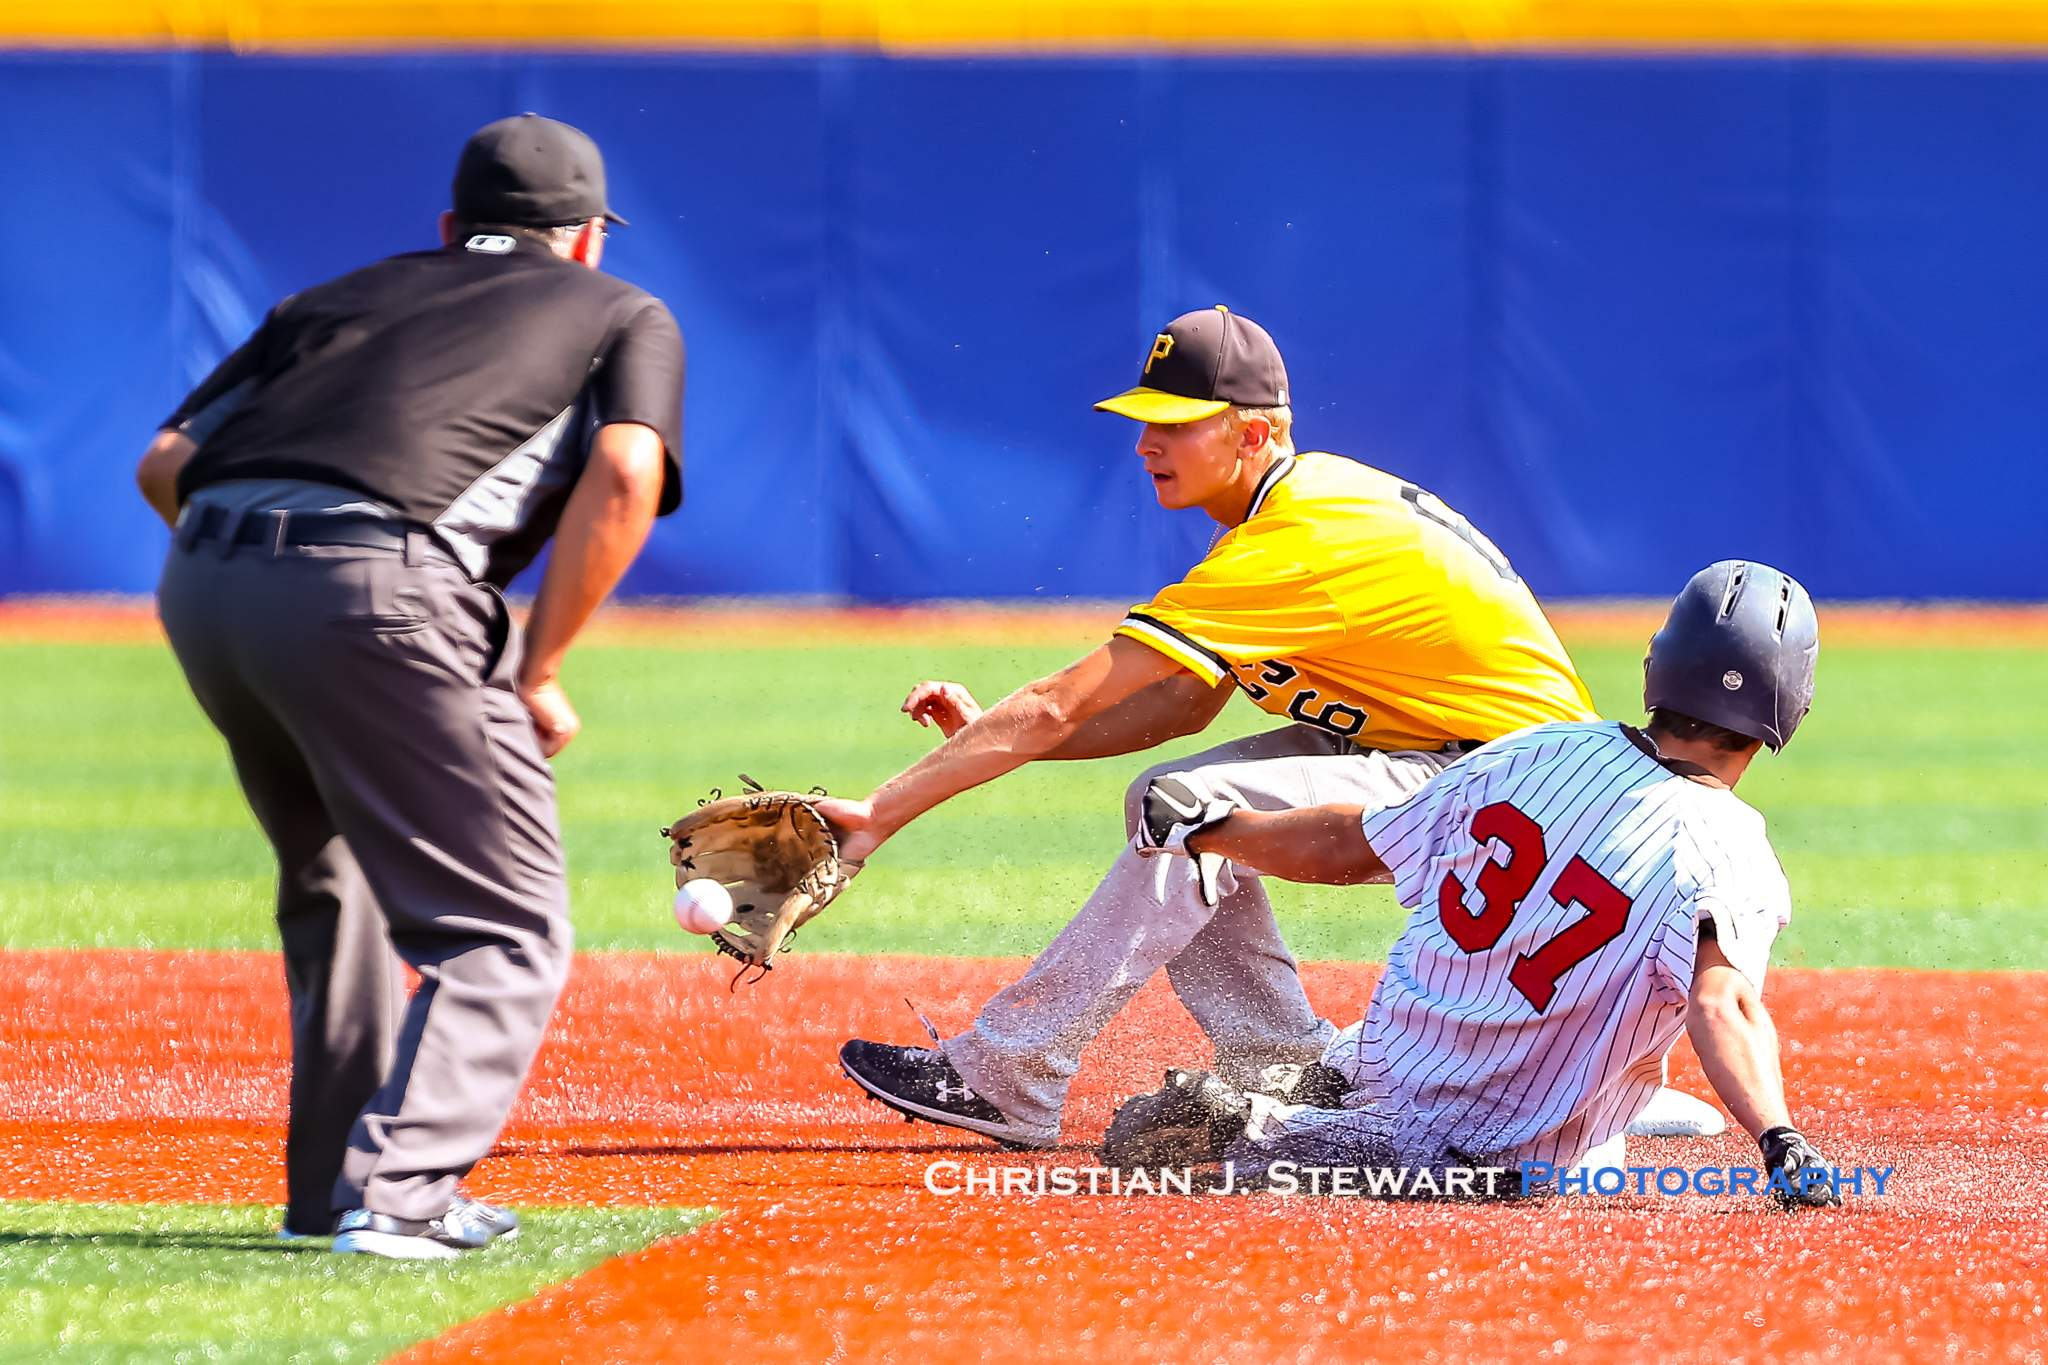 Pirates second baseman Josh Hill makes the catch a bit too late to nab Twins baserunner Damon Hutchings on this play in Sunday's final game (Photo: Christian J. Stewart)